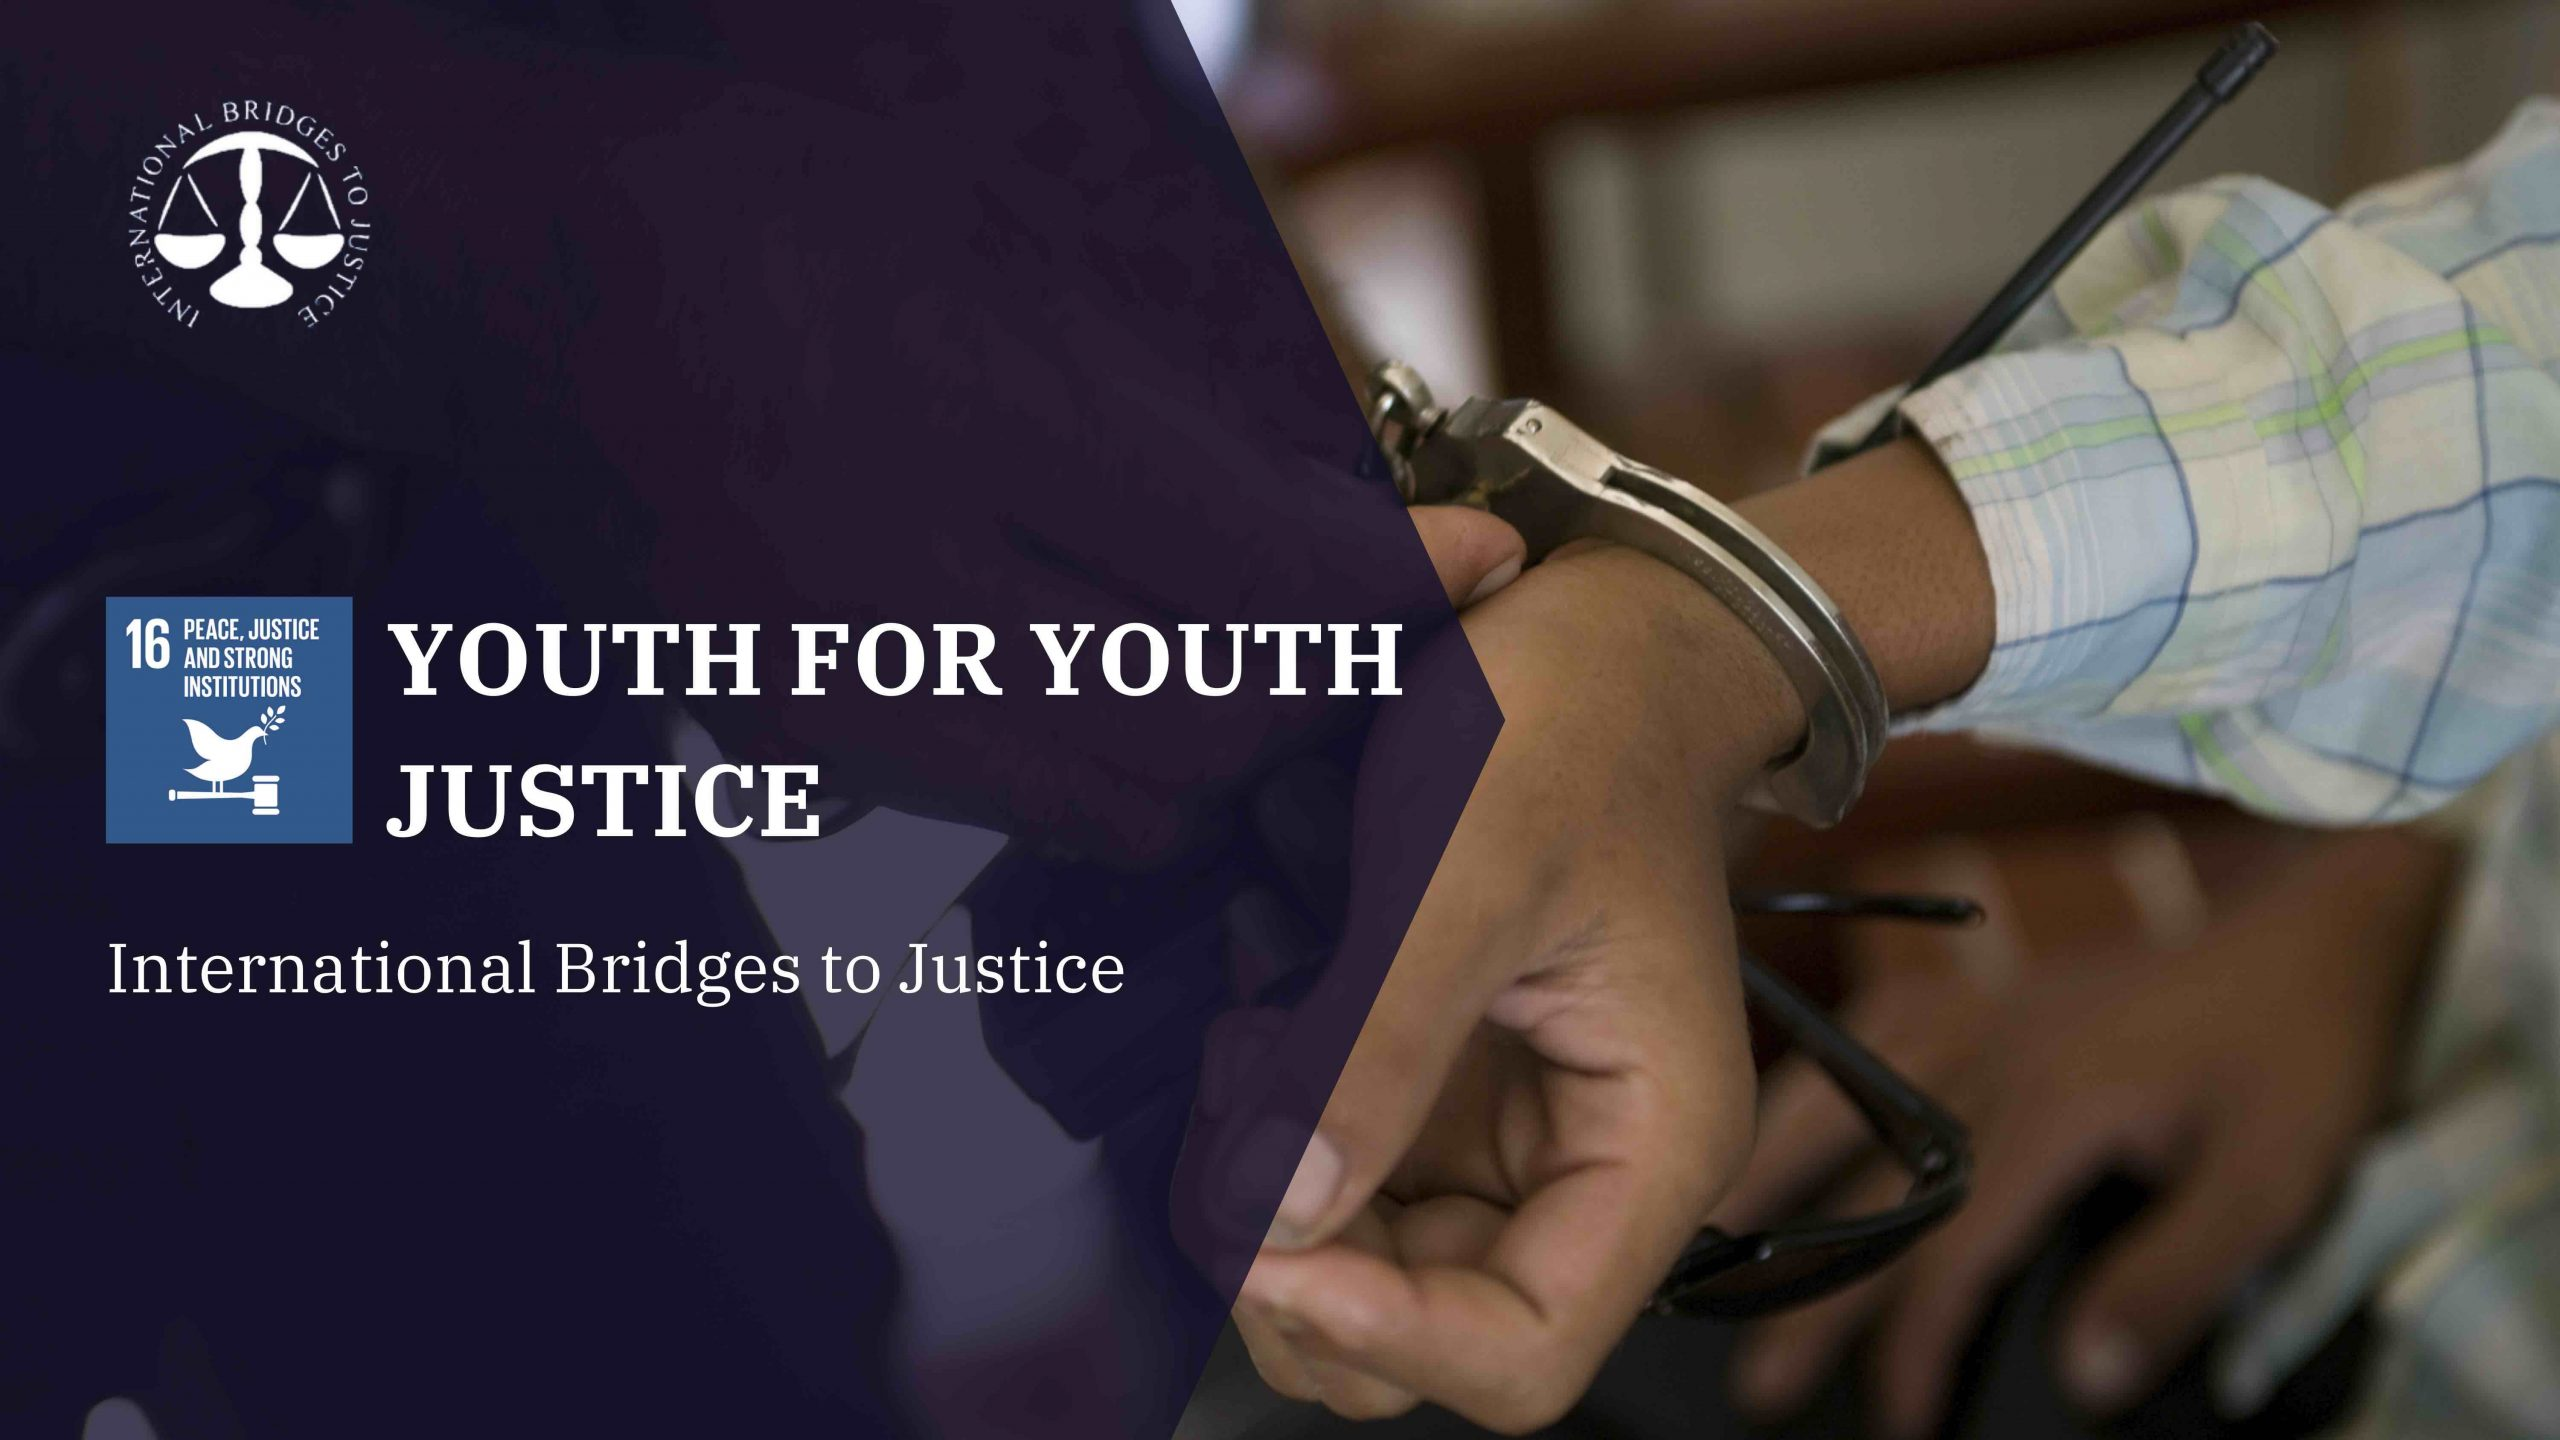 Youth for Youth Justice Initiative